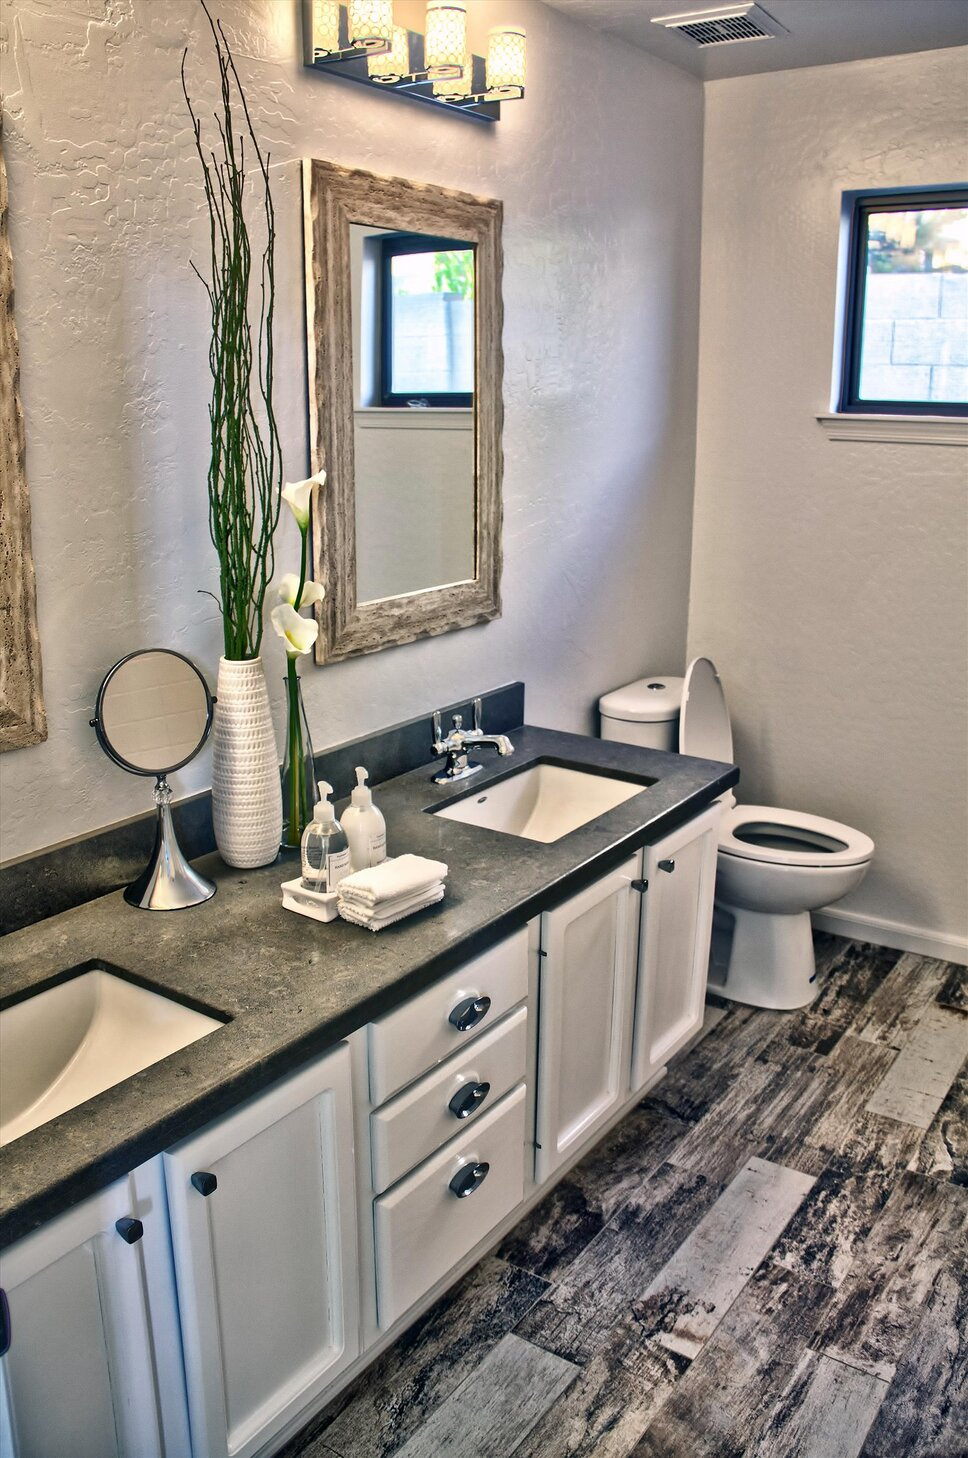 Refreshing makeover for guest bathroom. Porcelain wood flooring, Brushed Nickel Fixtures, Coordinating Light Fixtures, Limestone Countertop. Contemporary Bathroom design